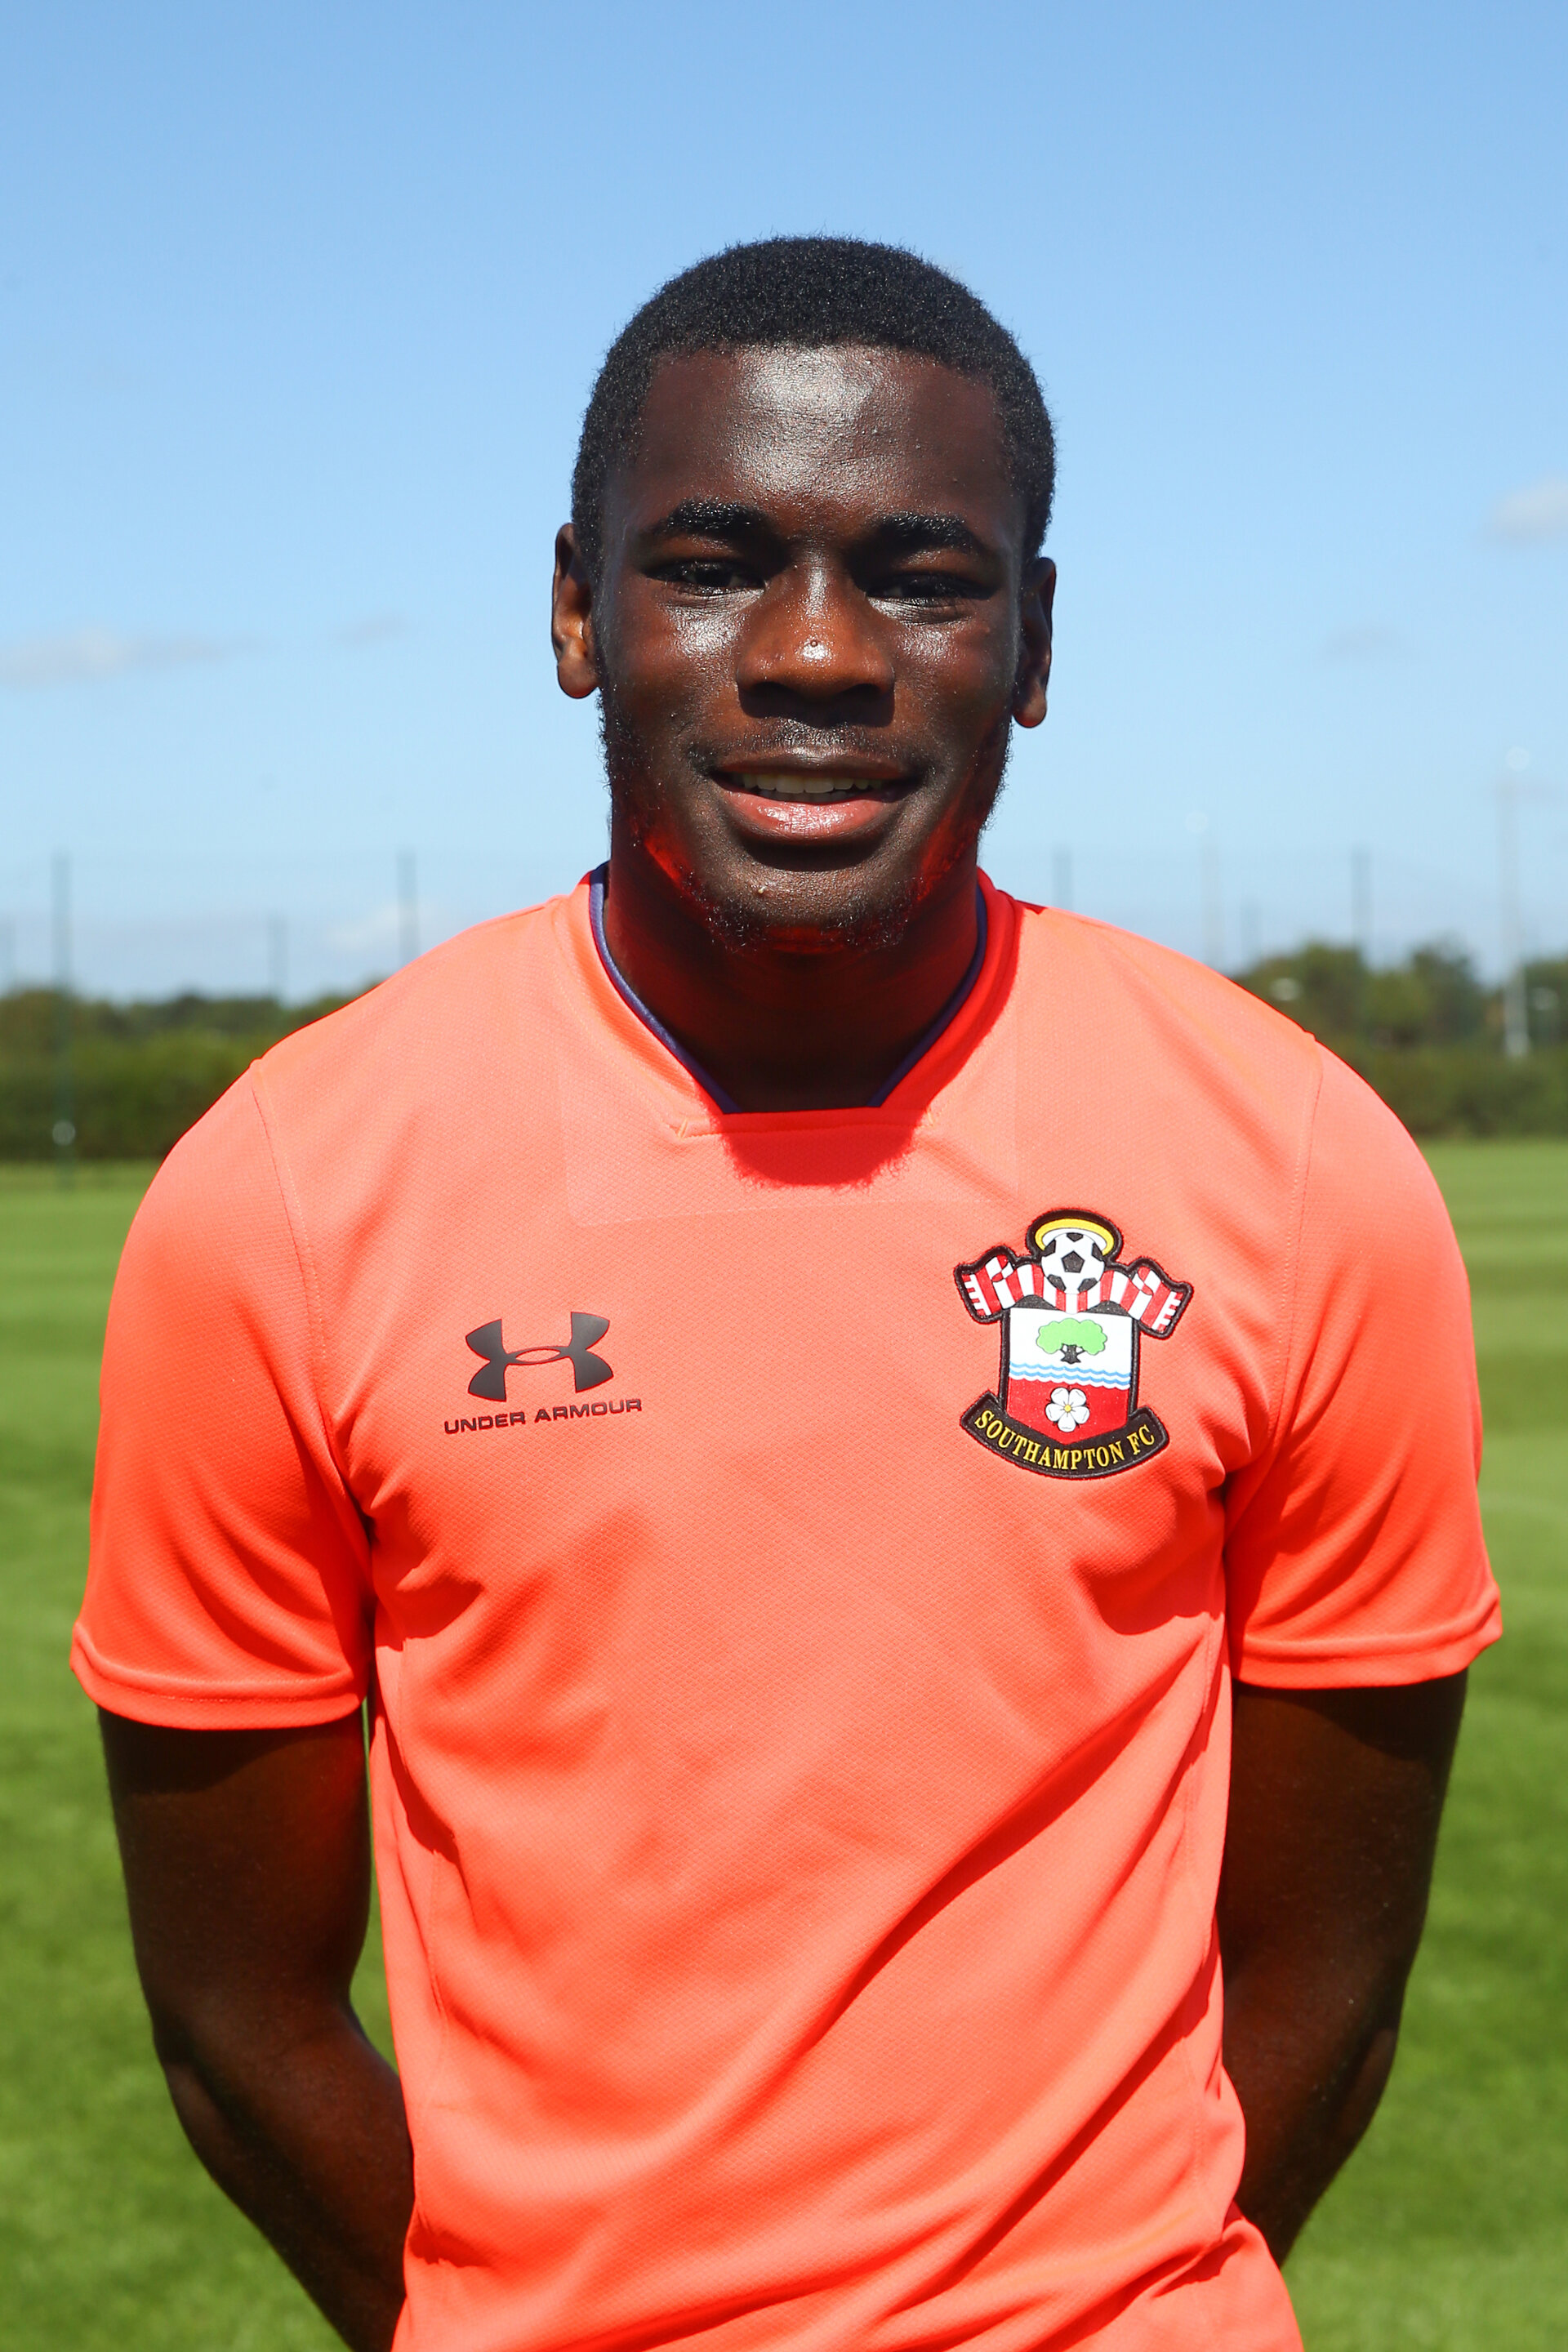 SOUTHAMPTON, ENGLAND - August 20: Lucas Defise who signed his first professional contract at Staplewood Training ground on August 20, 2020 in Southampton, England. (Photo by Isabelle Field/Southampton FC via Getty Images)